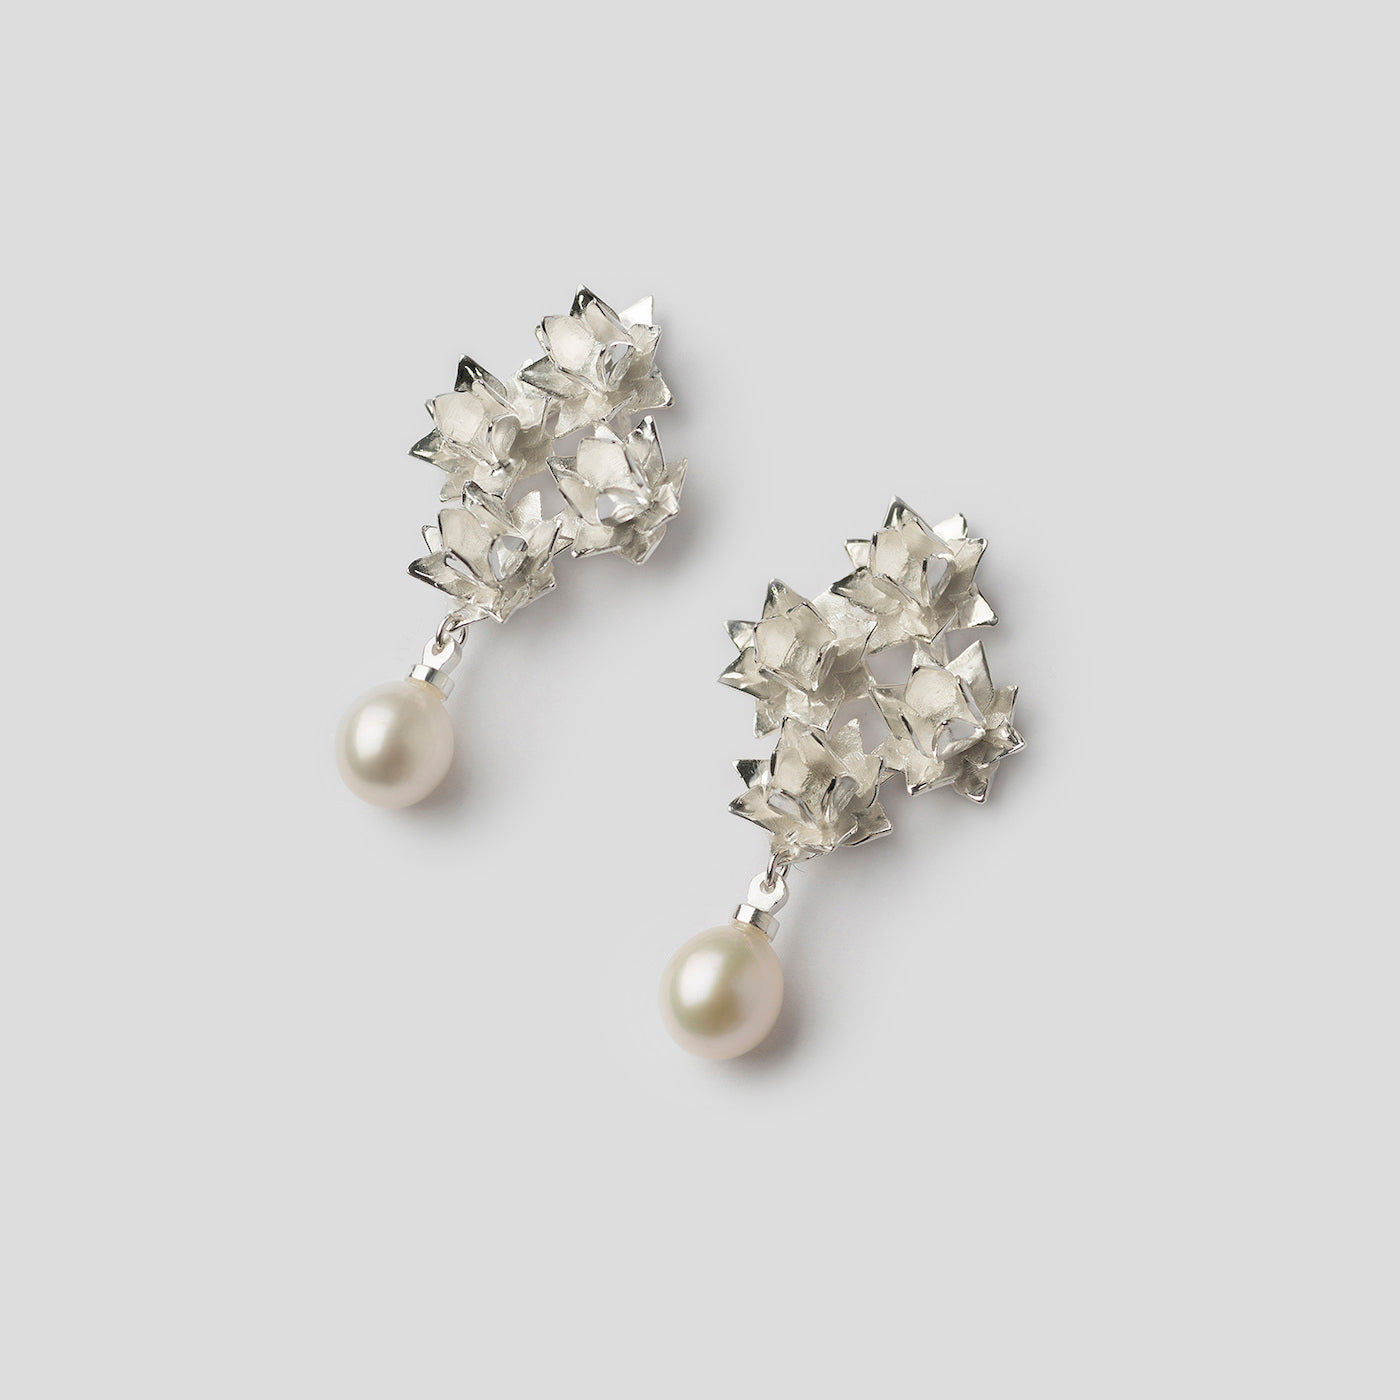 silver four lotus pearl earrings on angle on white background